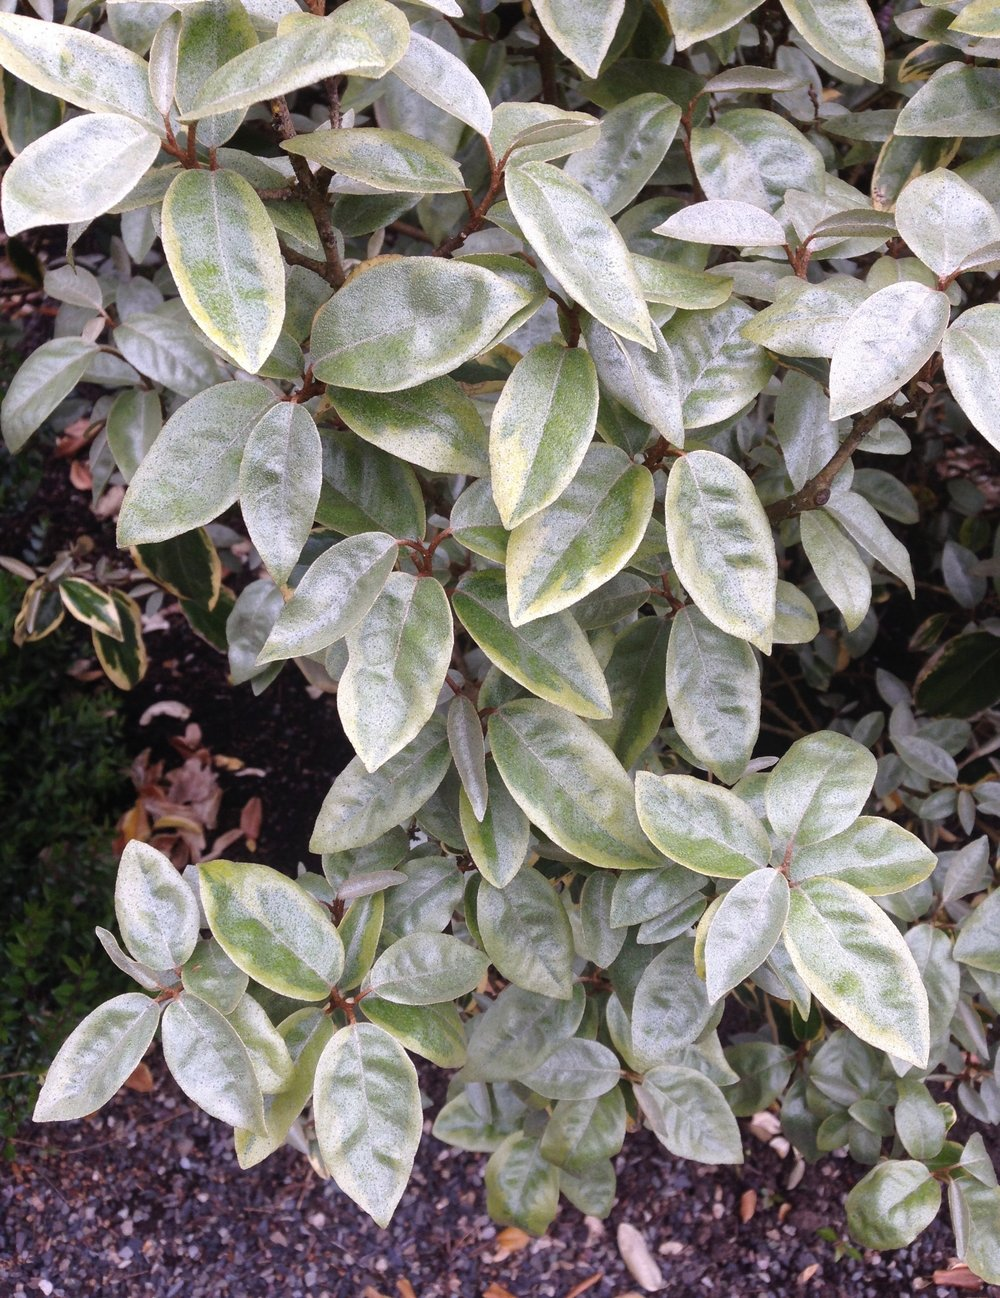 Elaeagnus  'Gilt Edge' in April, with silvery-gray new growth.  NOTE last season's foliage color behind the new leaves.